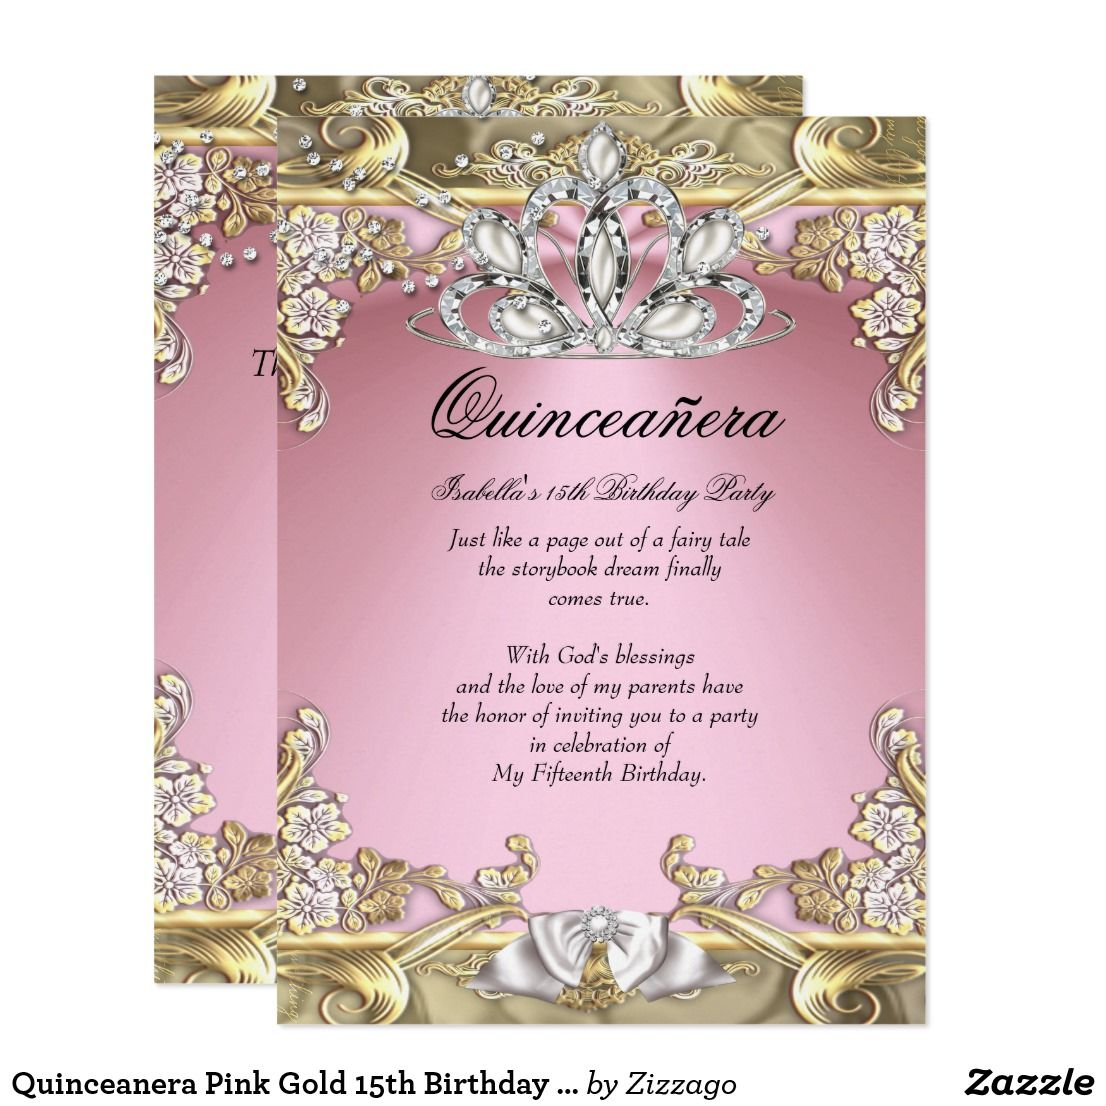 Quinceanera Pink Gold 15th Birthday Party Card   15th birthday and ...